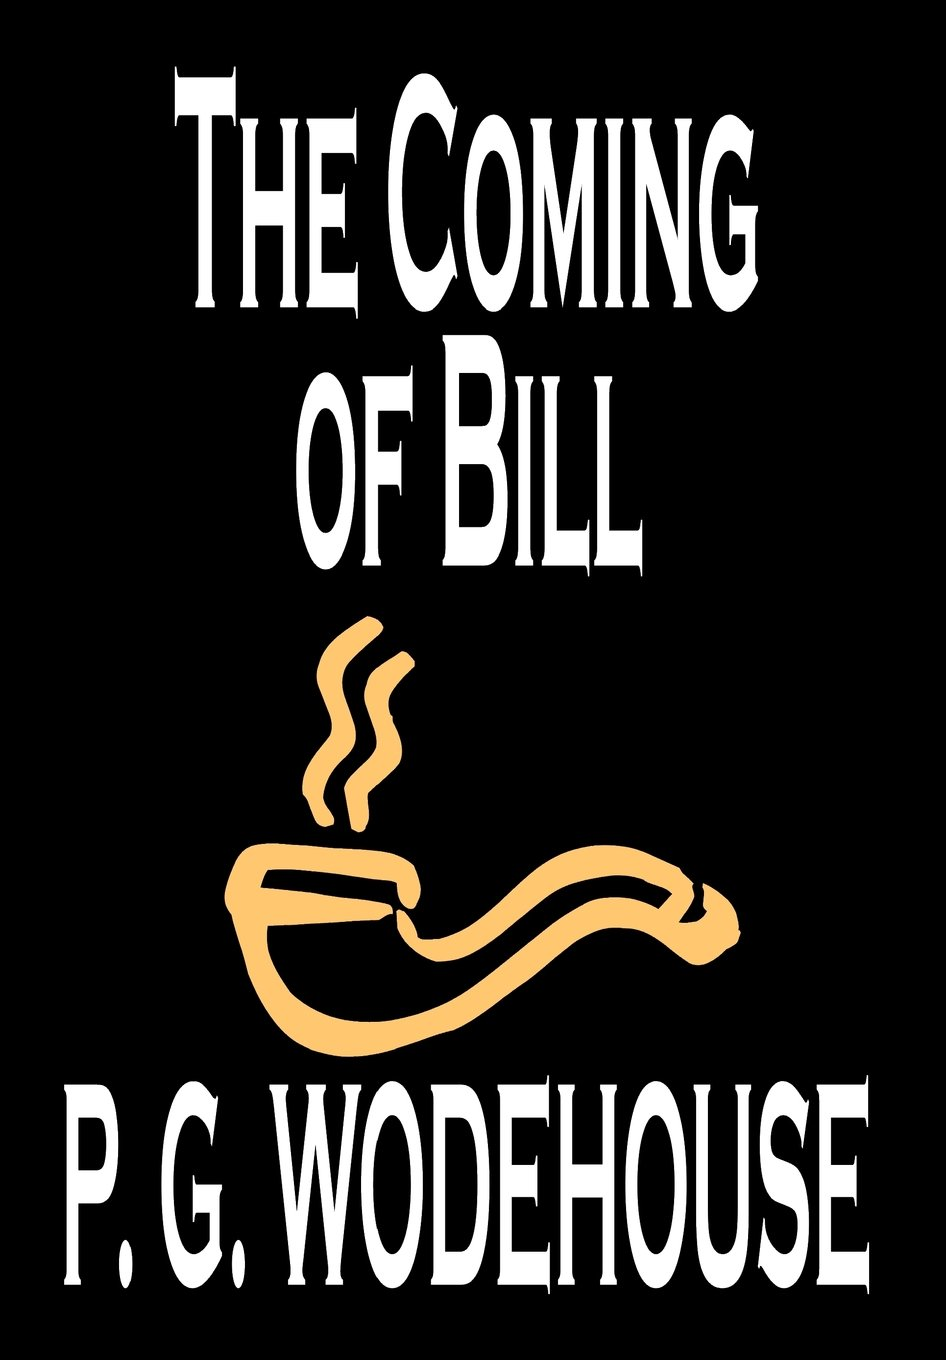 Download The Coming of Bill by P. G. Wodehouse, Fiction, Literary PDF